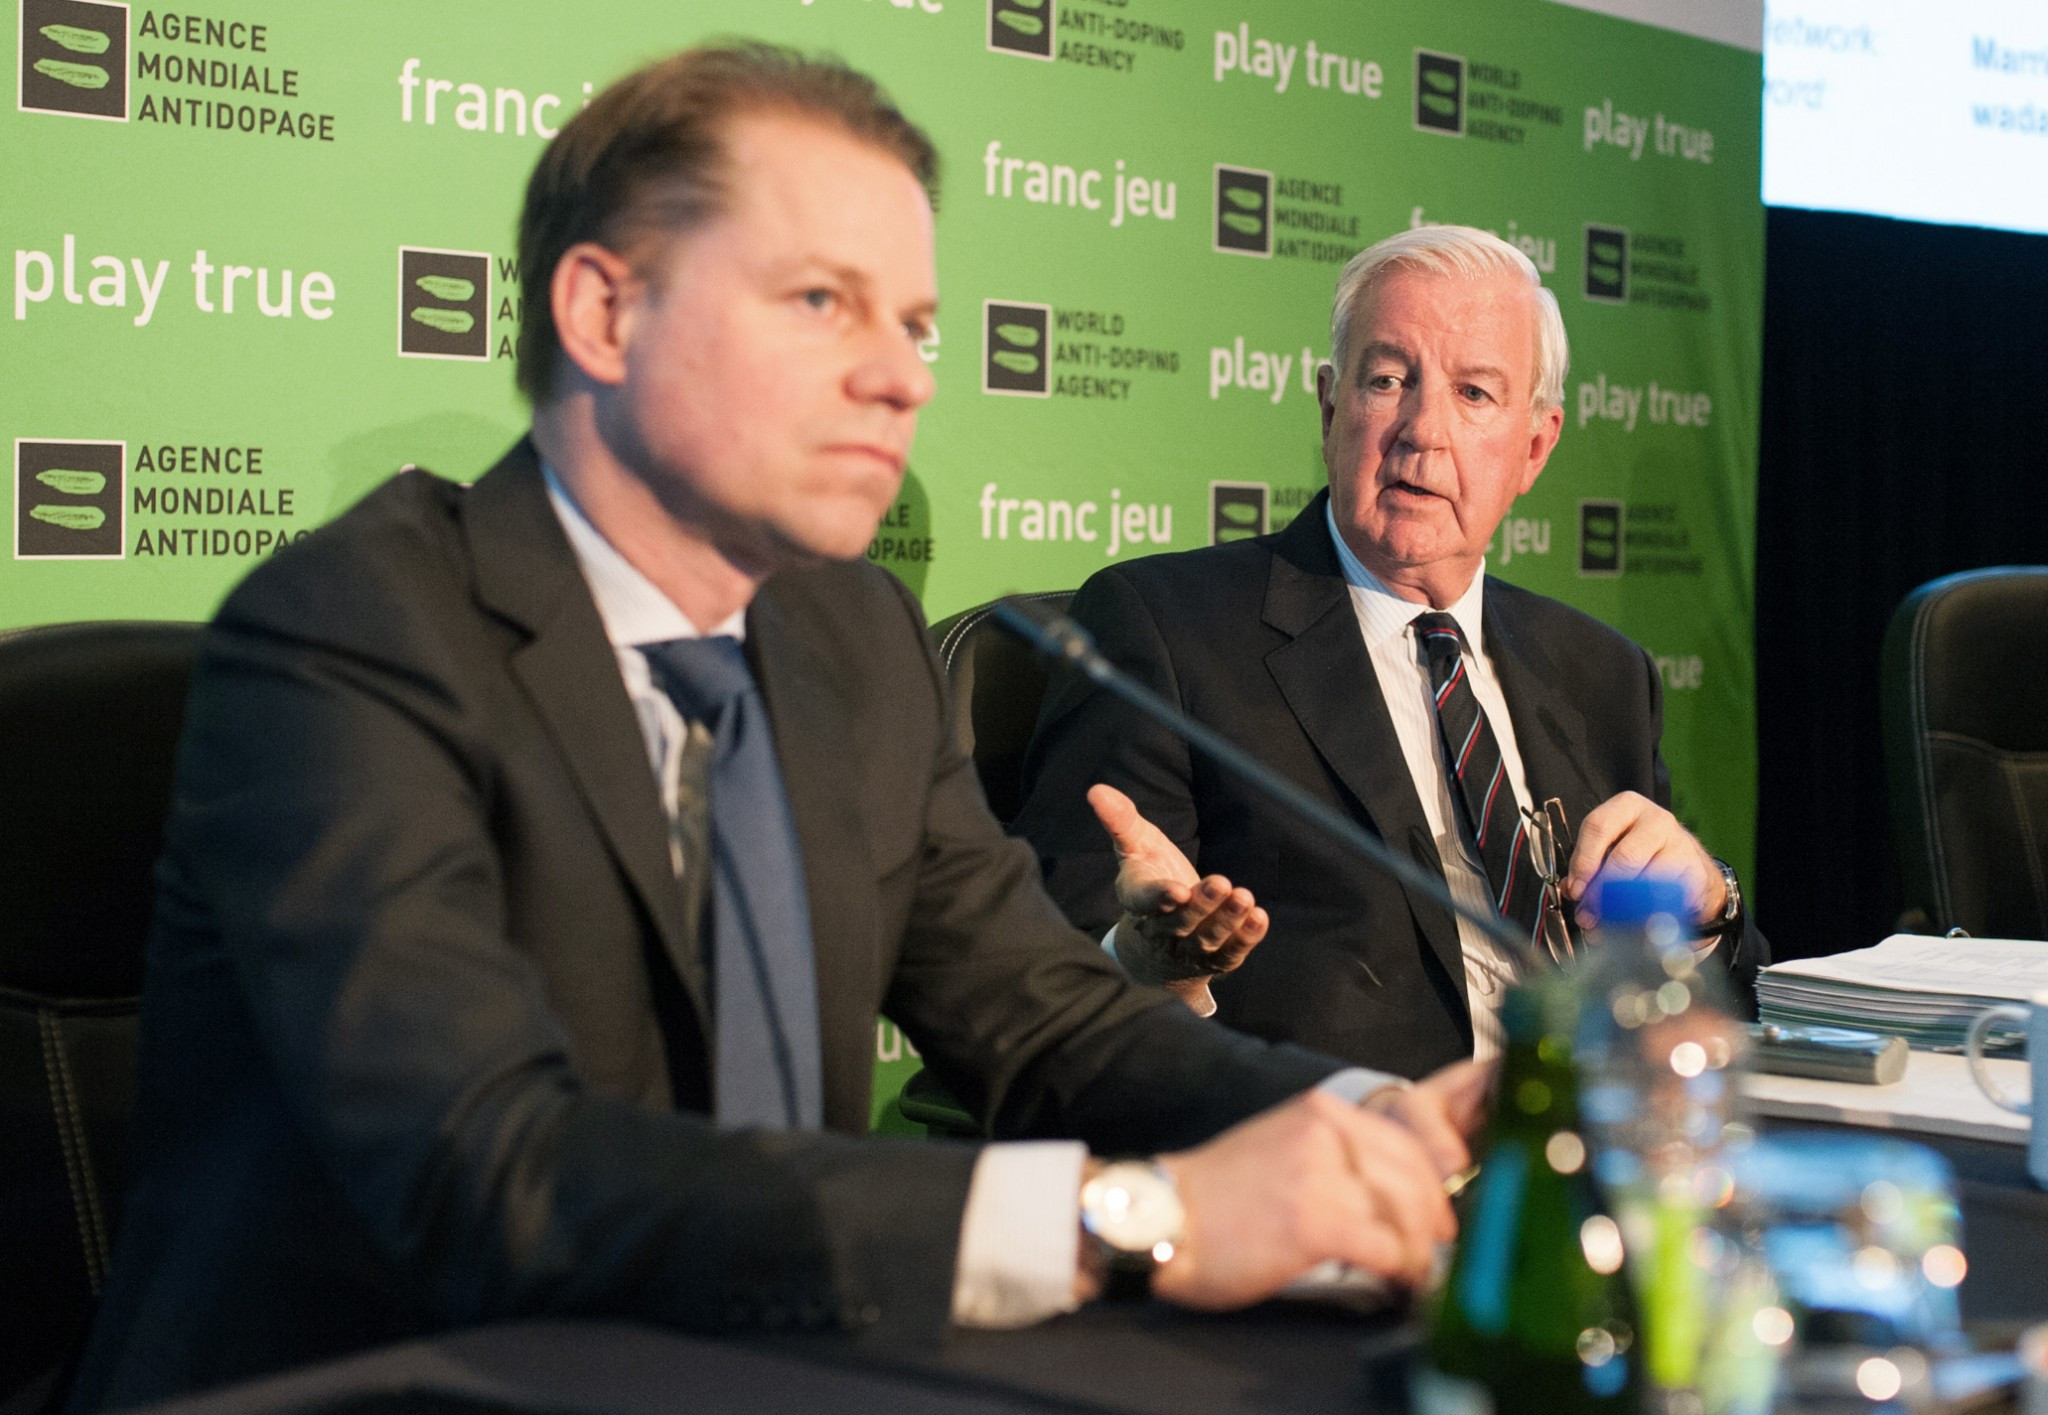 Olivier Niggli, left, pictured with WADA President Sir Craig Reedie, has reportedly said there is not enough evidence against the 95 athletes identified in the McLaren Report ©Getty Images